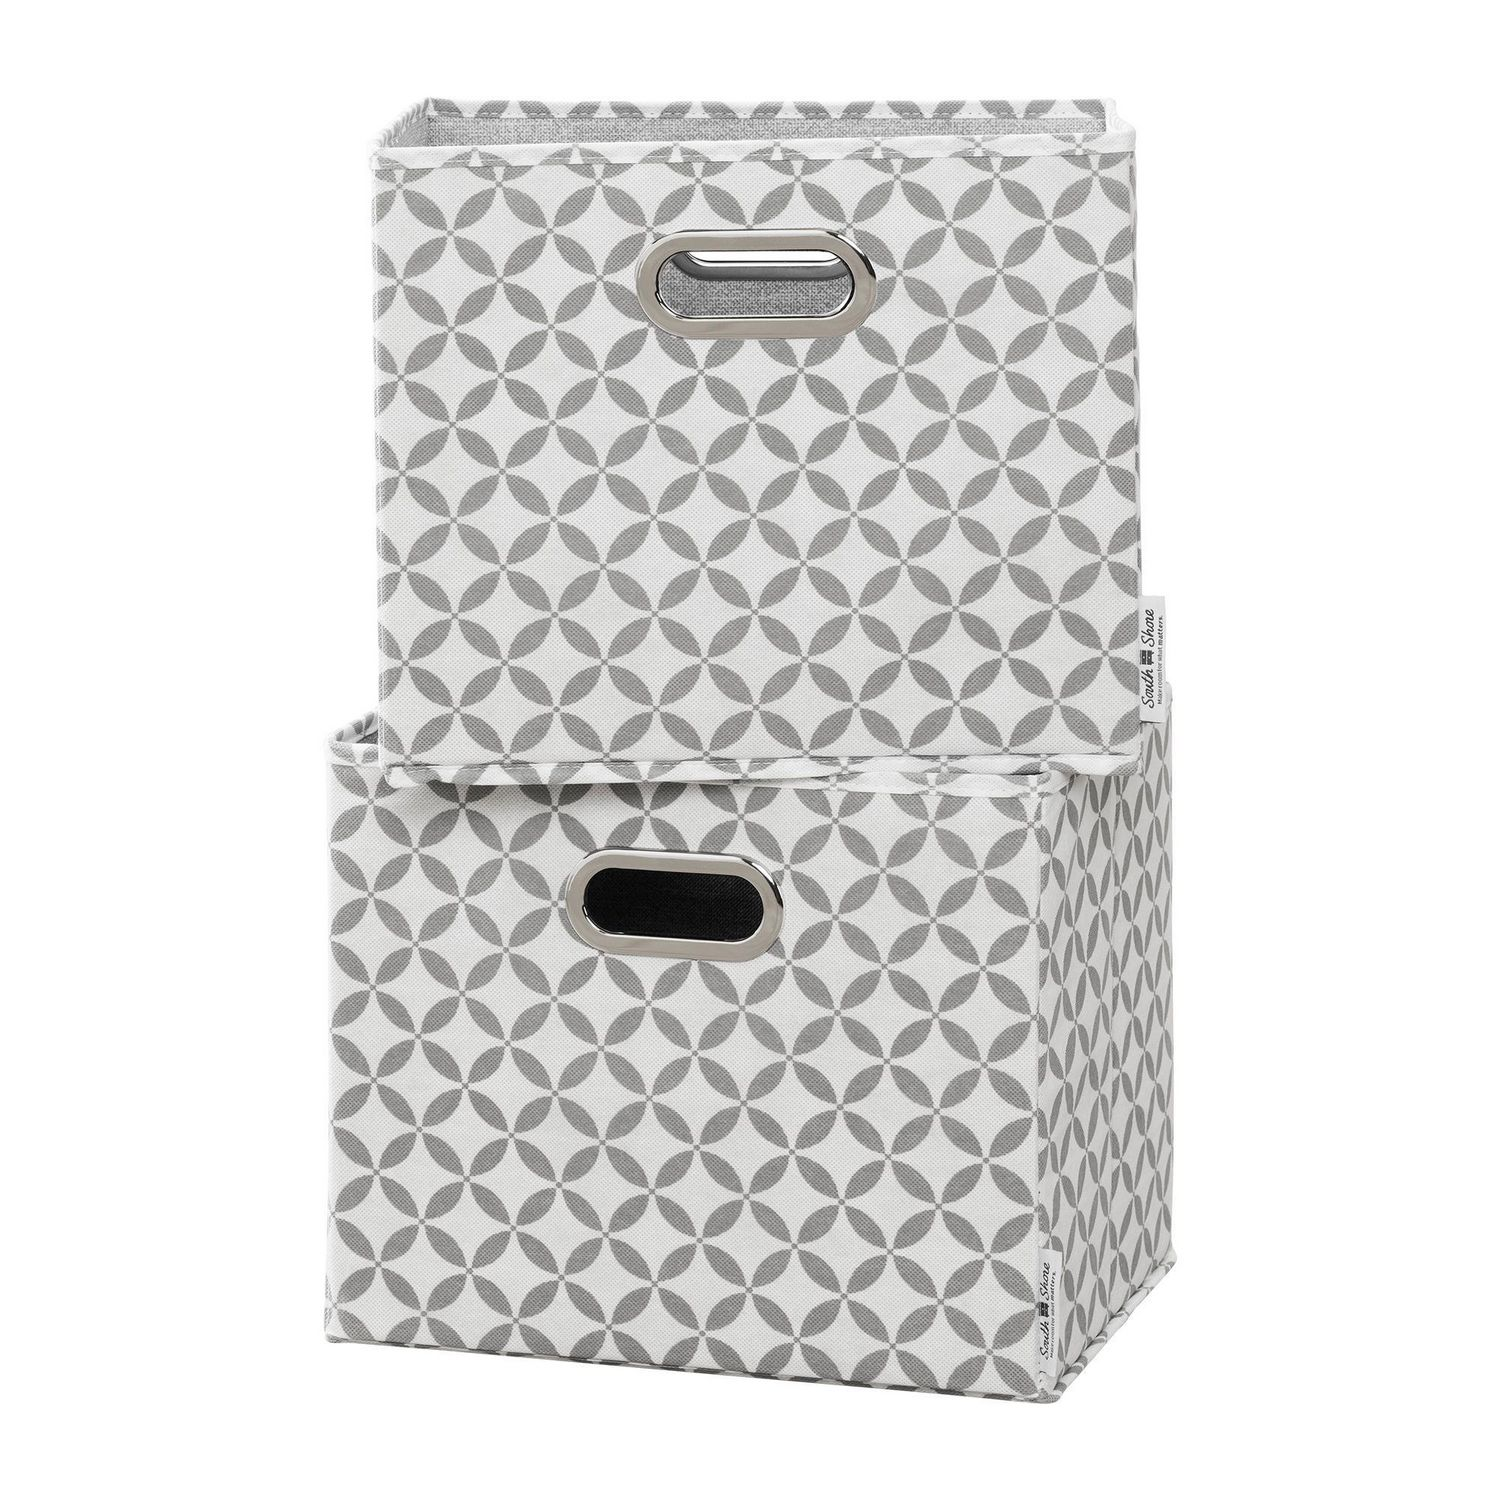 Best gifts for mom - South Shore Storit Fabric Storage Baskets, 2-Pack-Mouse Gray and White - For the mom who likes to organize everything